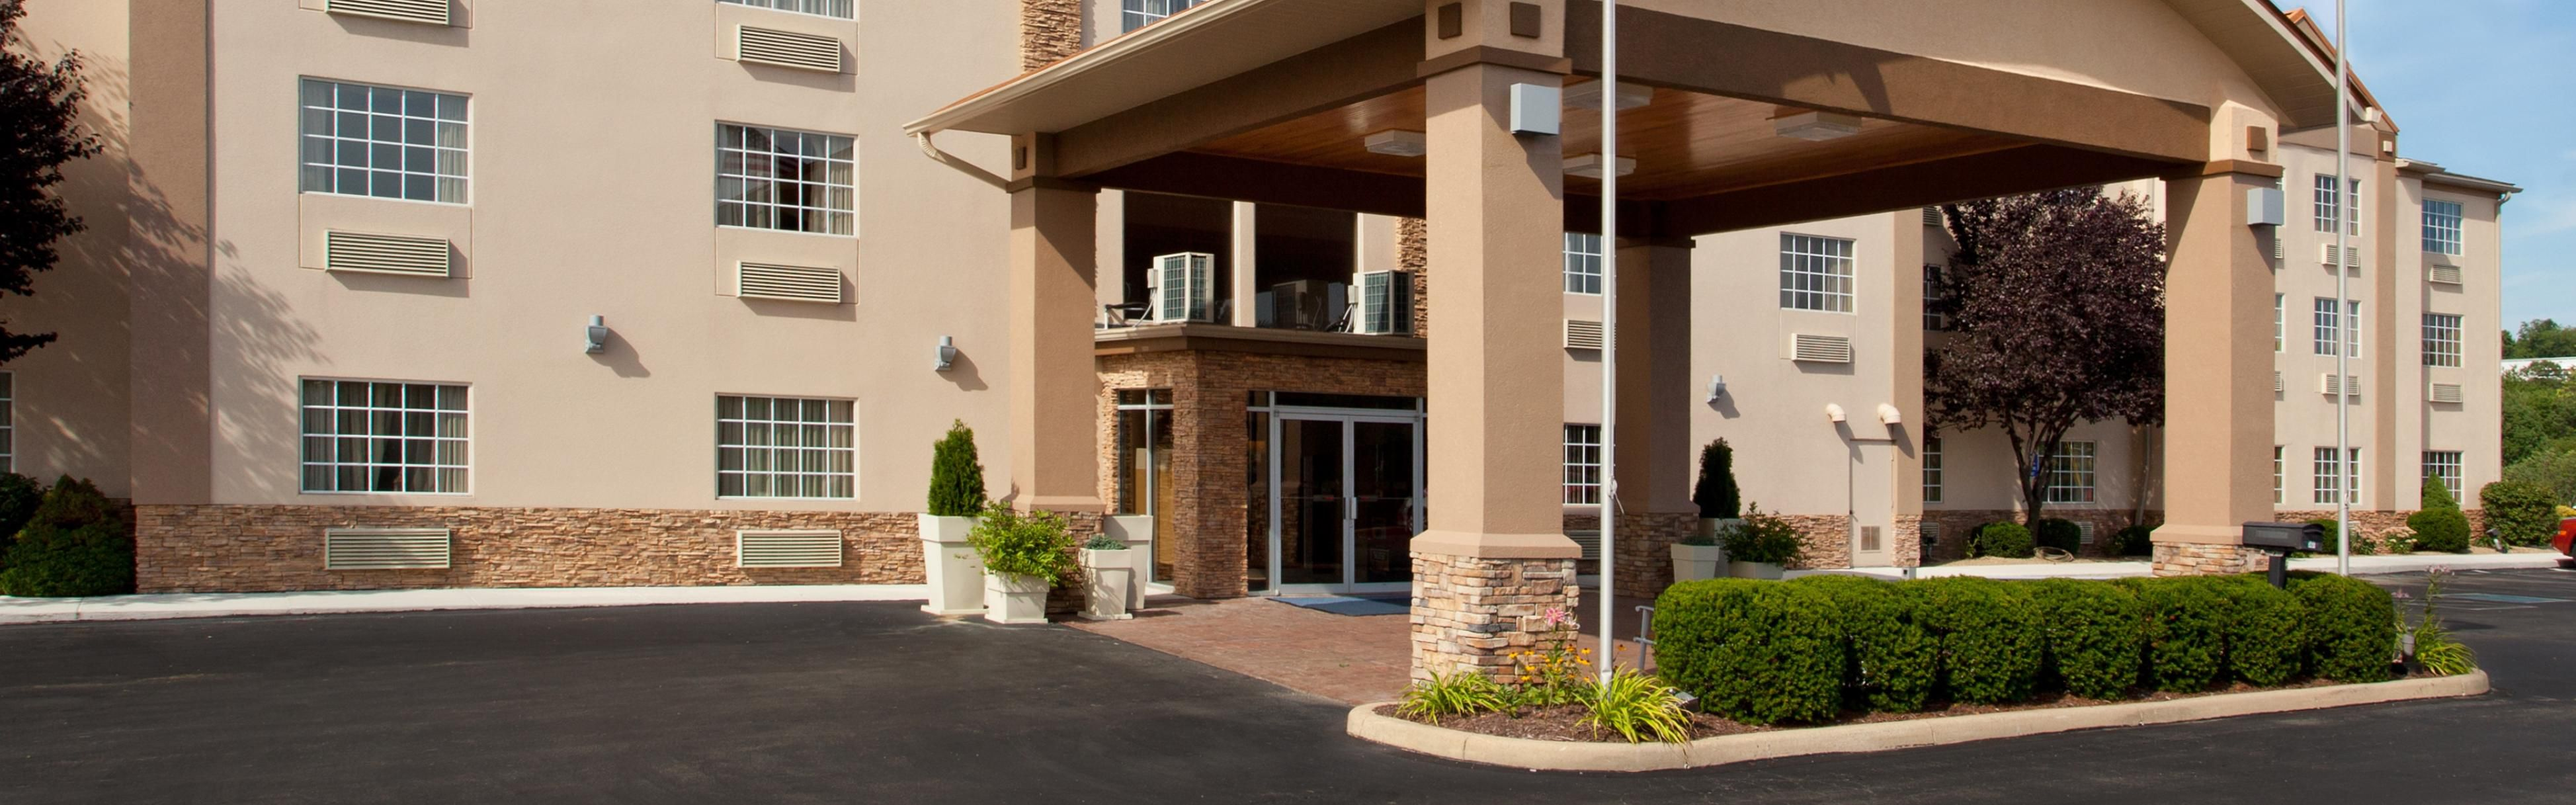 Holiday Inn Express Murrysville-Delmont image 0